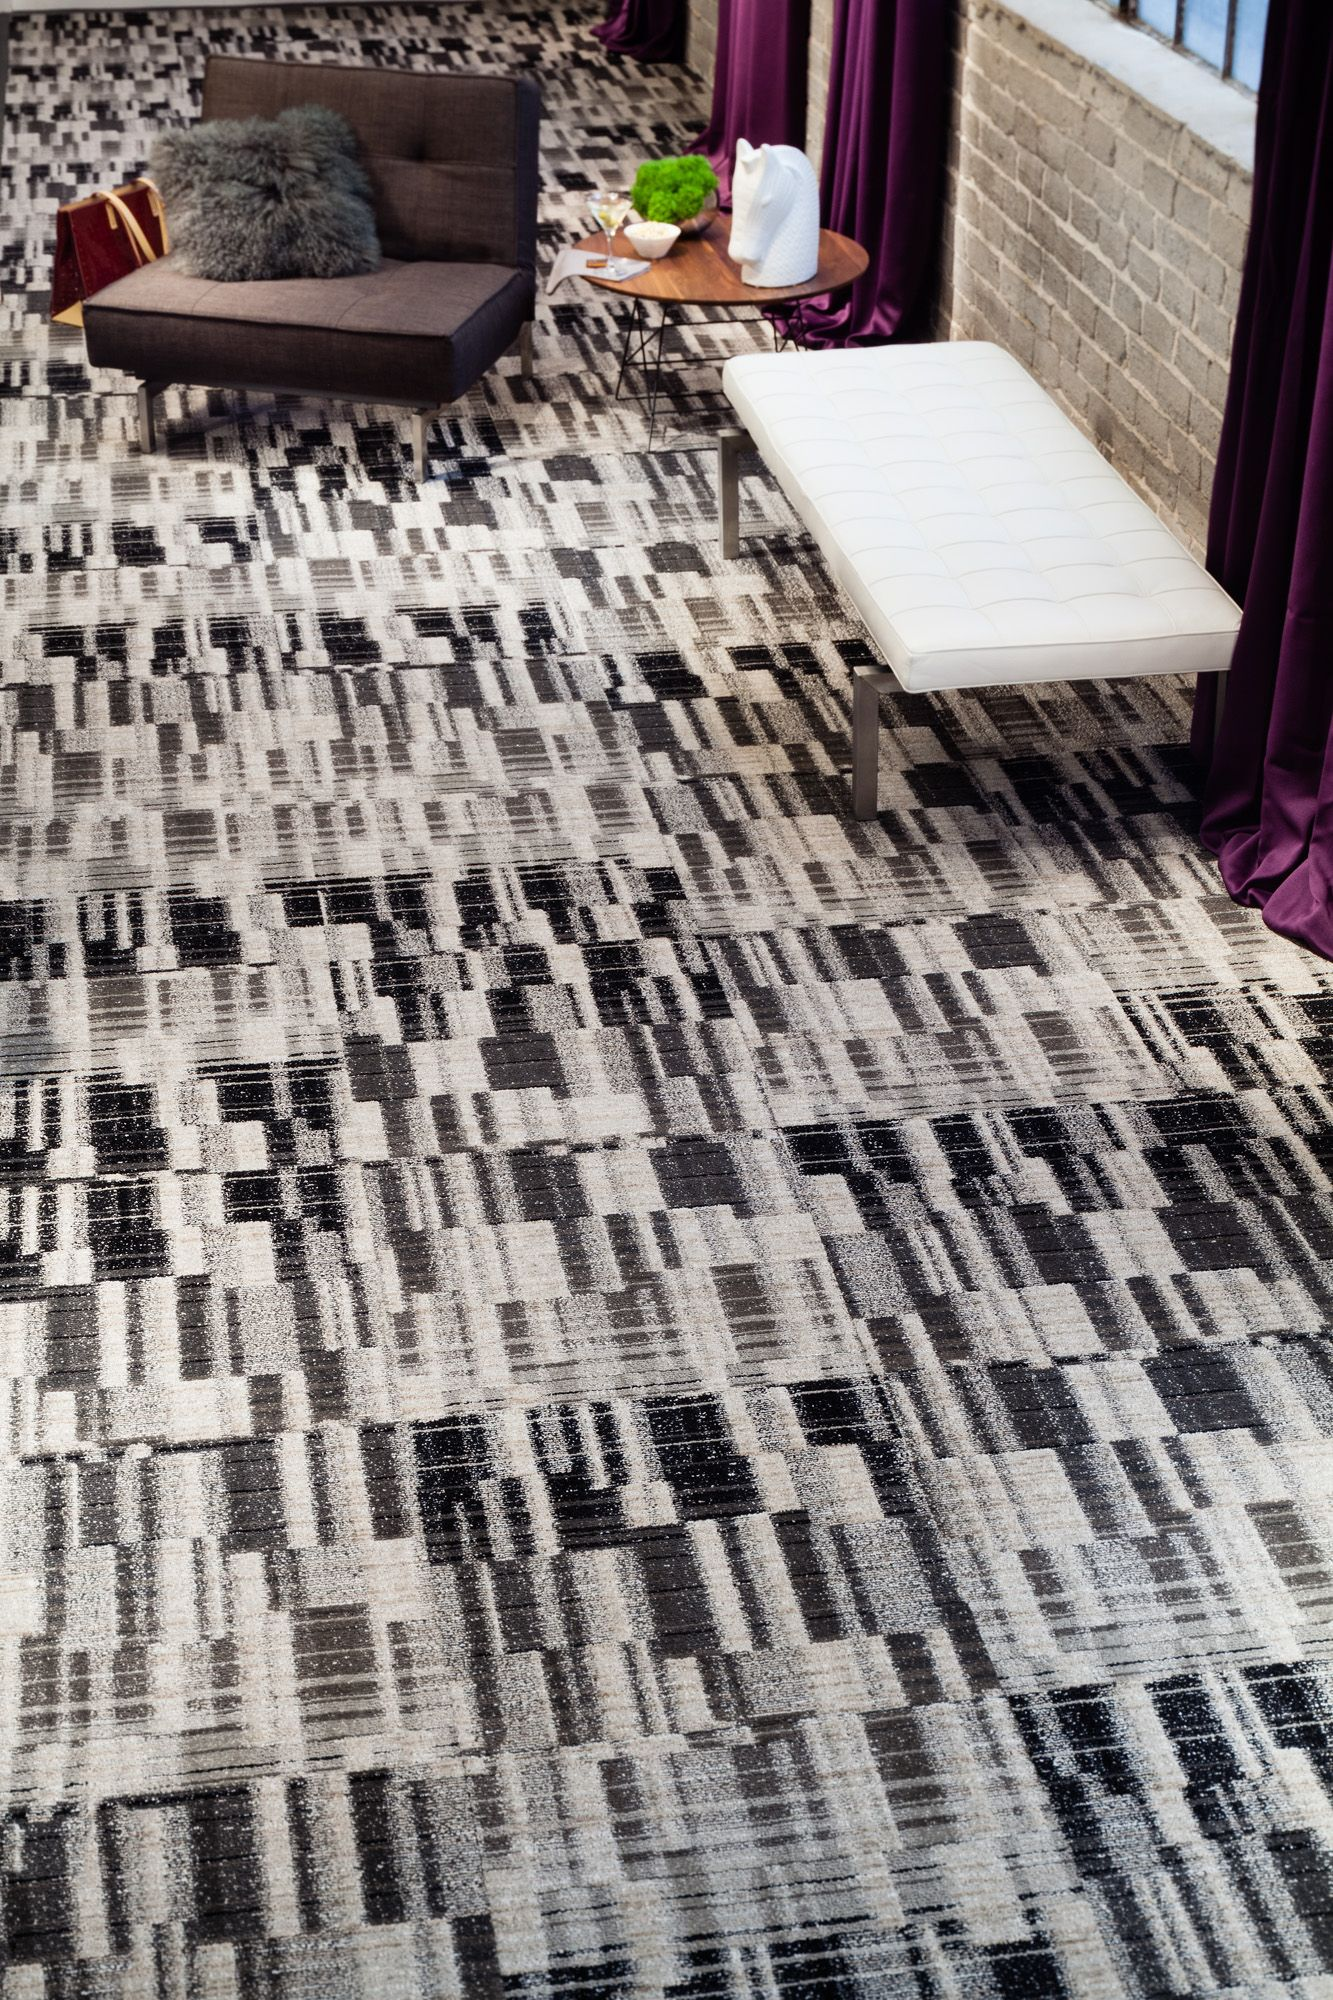 J J Invision S Marquee Pattern We Call This High Drama Http Www Jj Invision Com Products View 4338 Atticus Contemporary Rug Contemporary Design